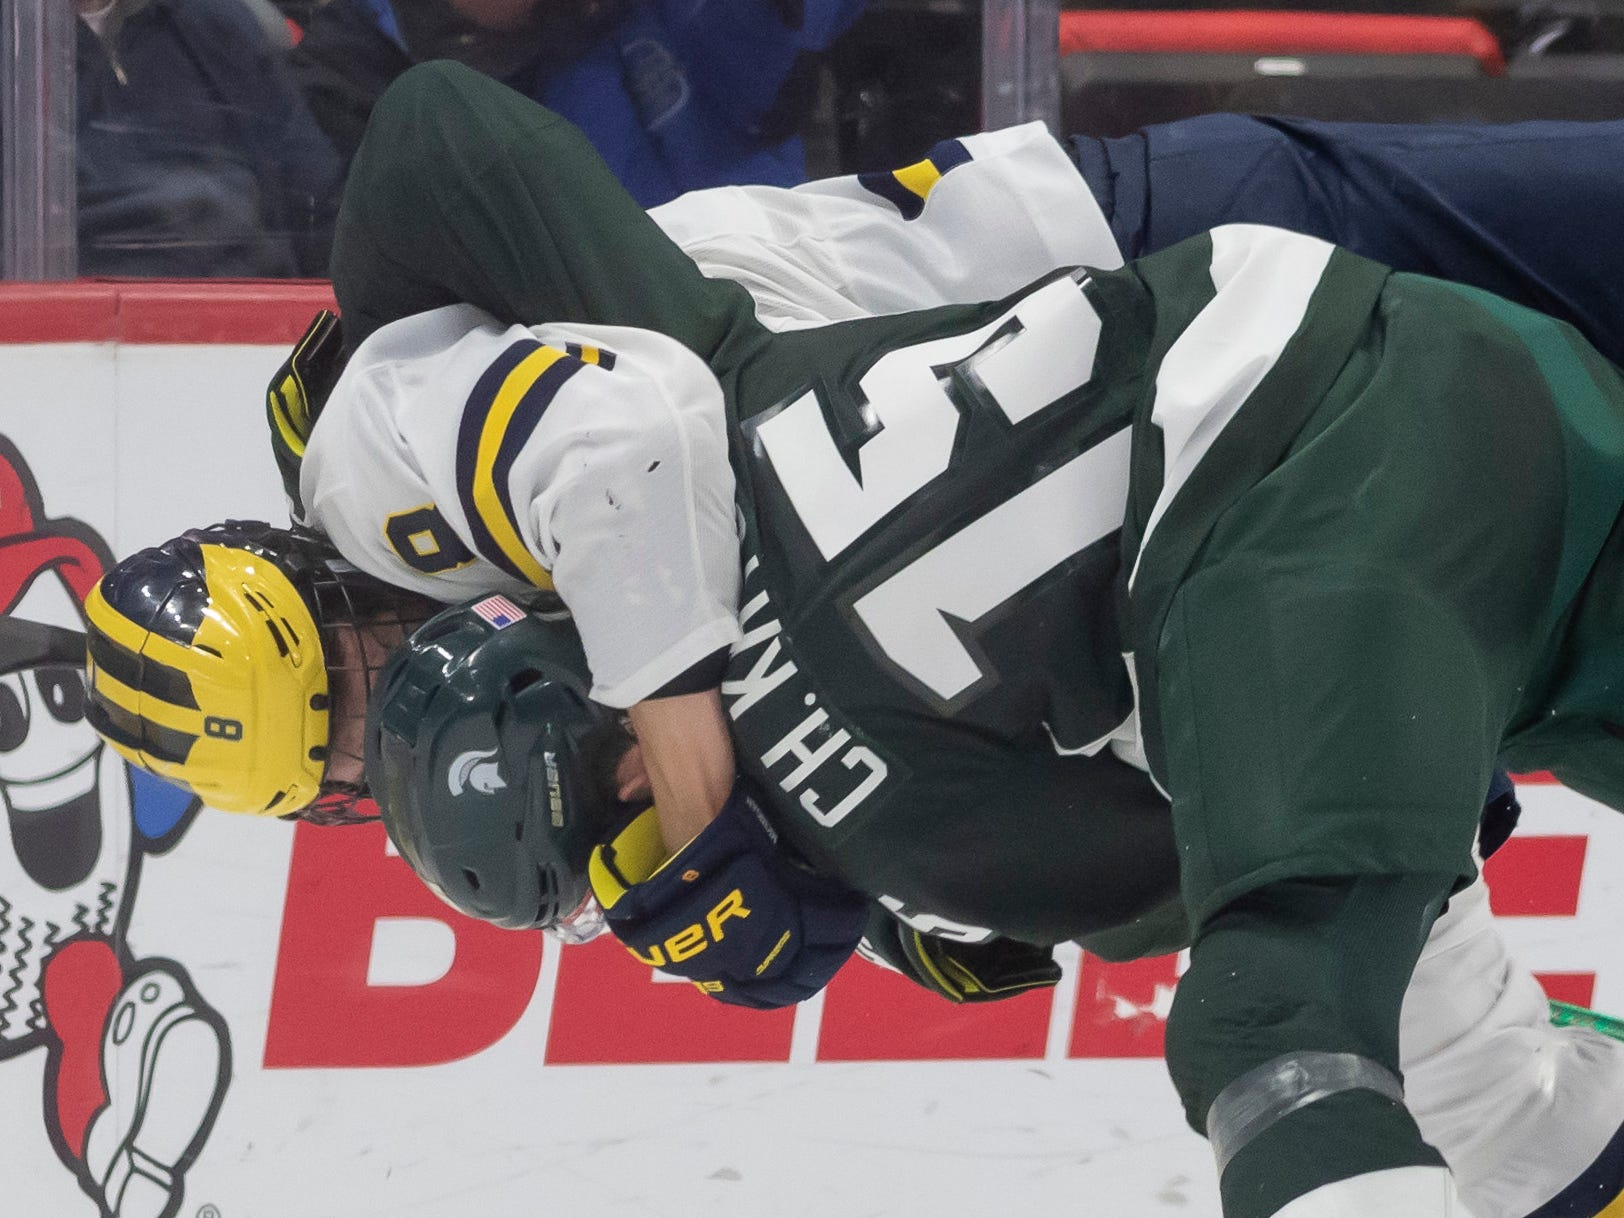 Michigan forward Jack Becker and Michigan State defenseman Christian Krygier duke it out during a fight in the first period.